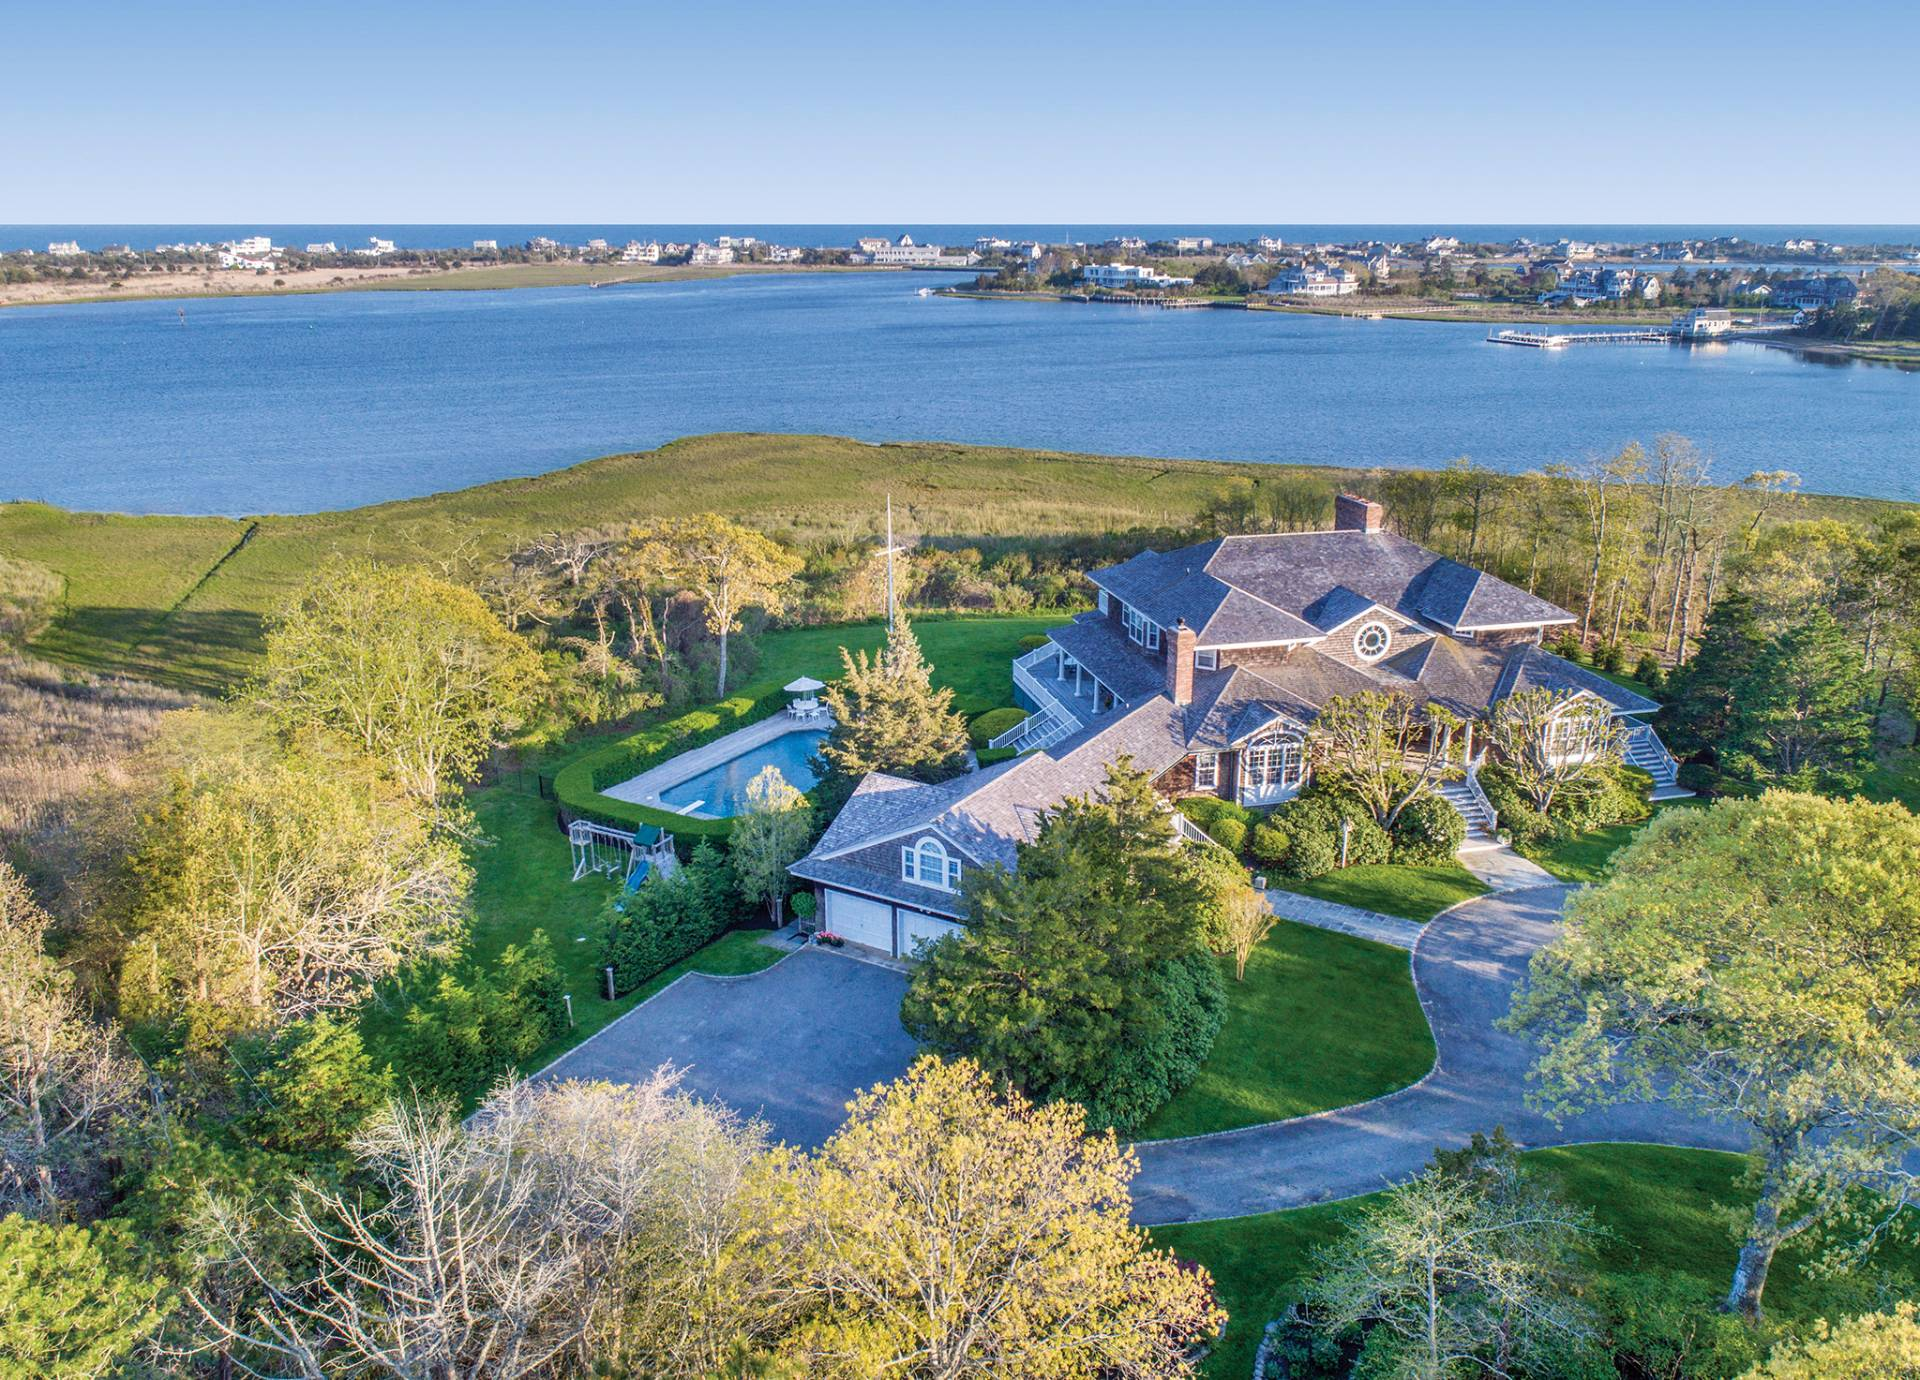 Single Family Home for Sale at Quogue Waterfront, Panoramic Water Views 32 Penniman Point Road, Quogue, New York